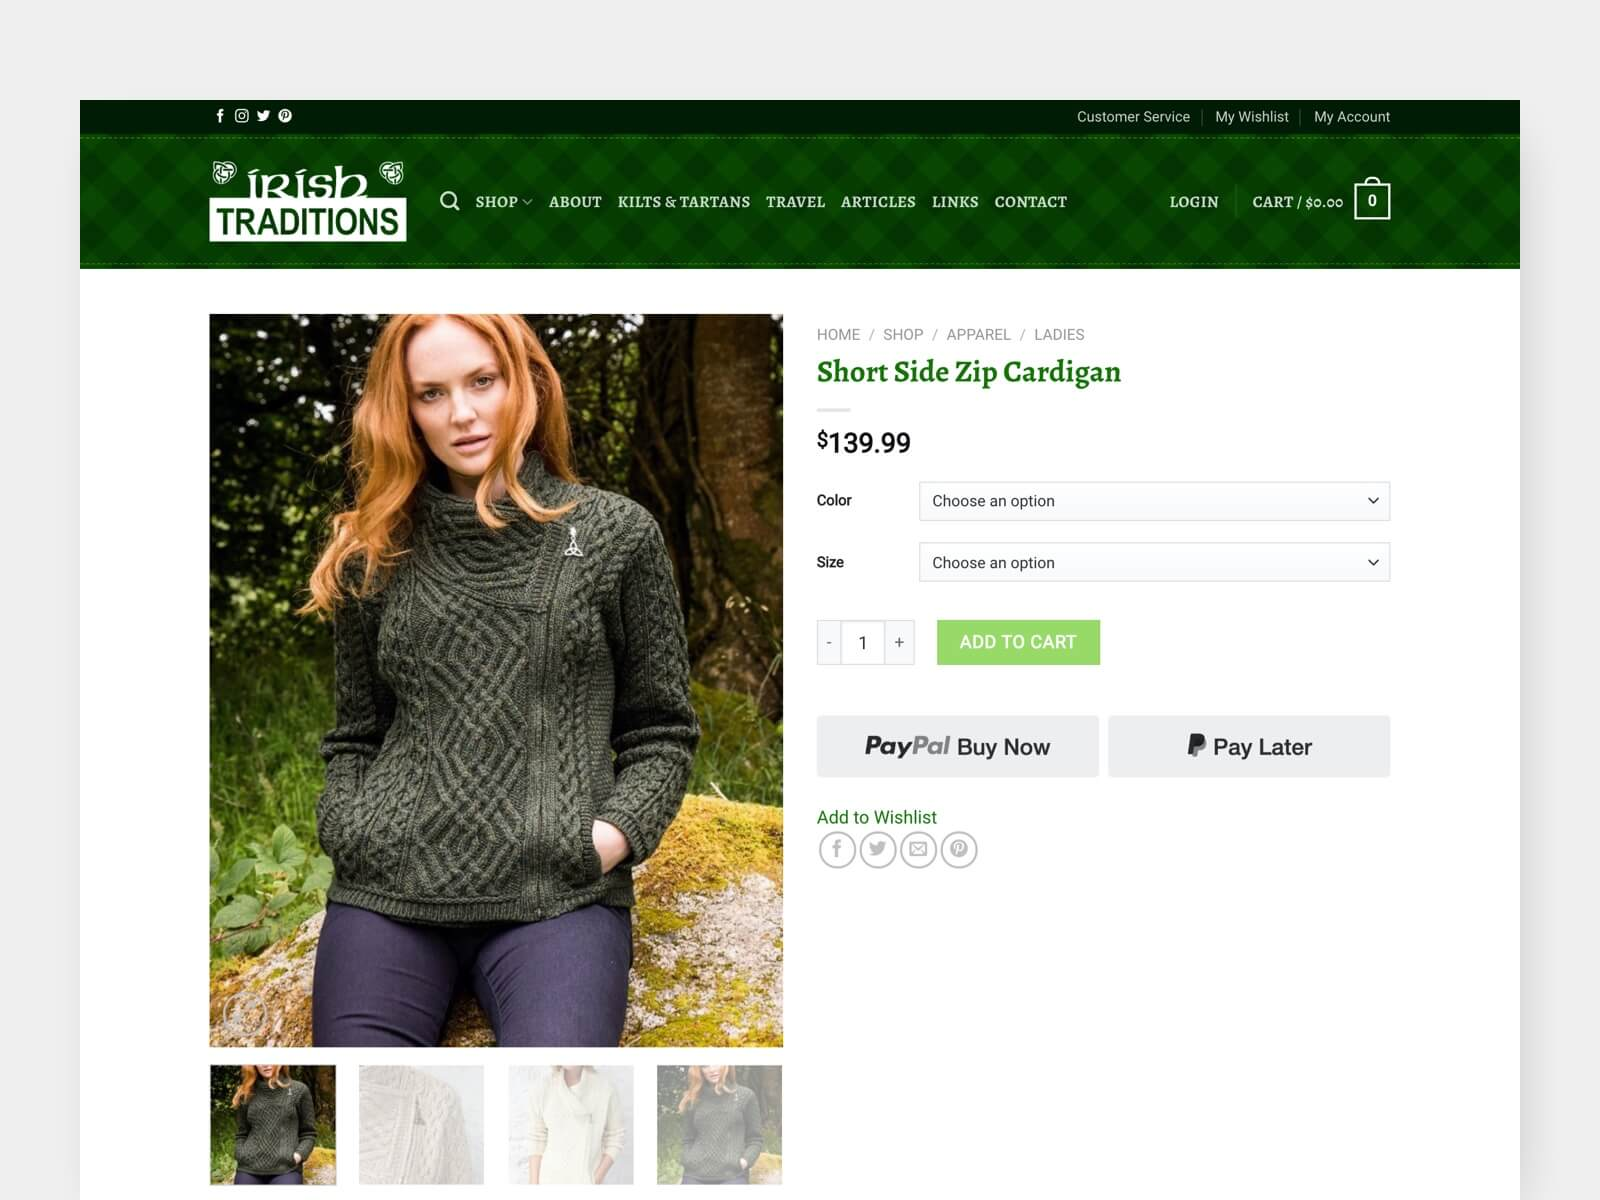 irish-traditions-product-page@2x